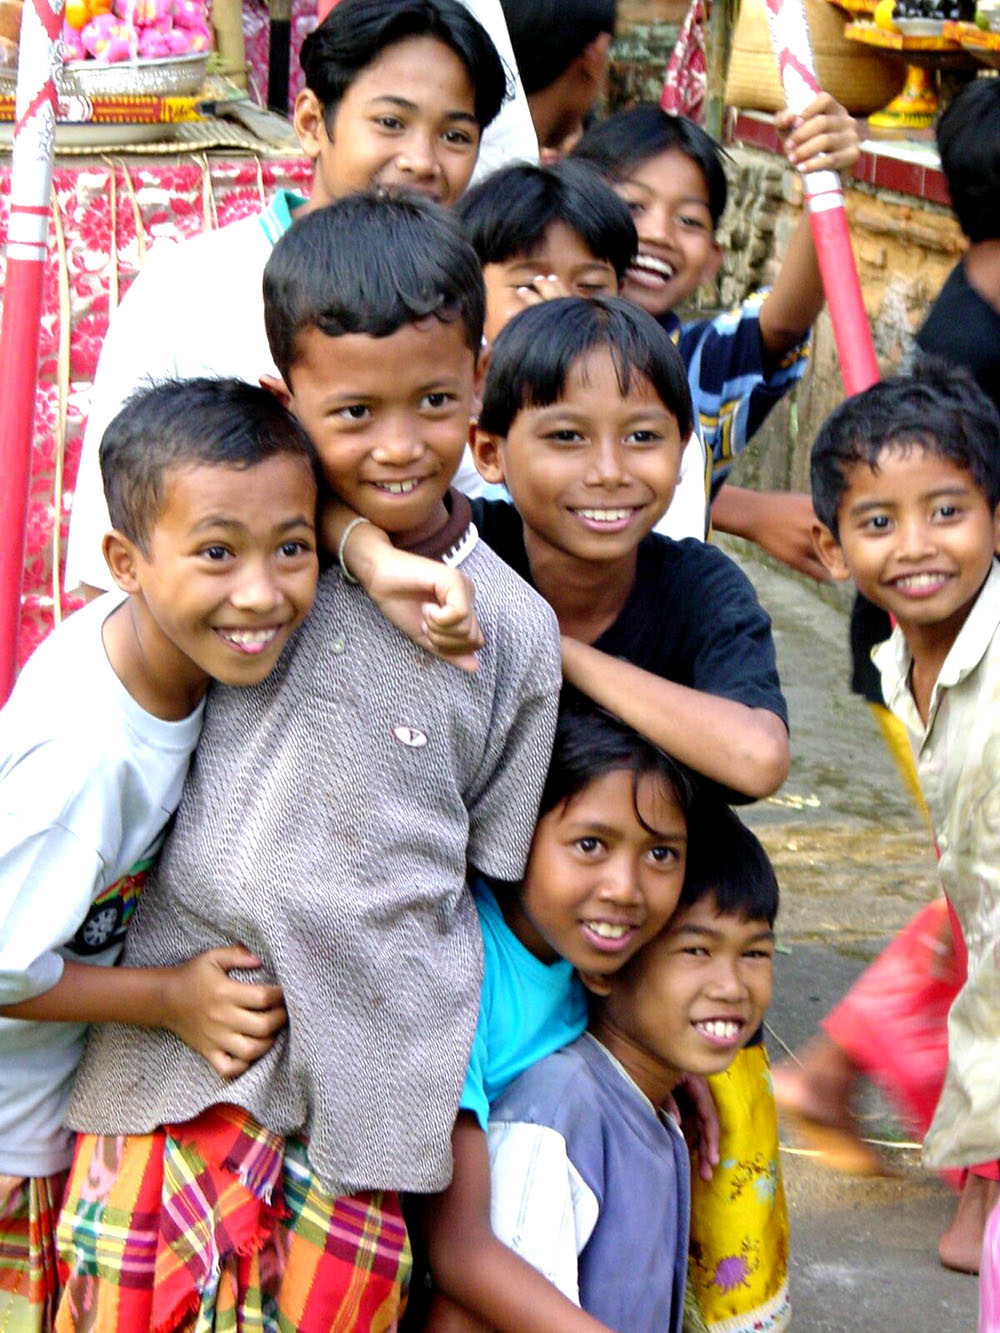 Bali Travels People Images Page